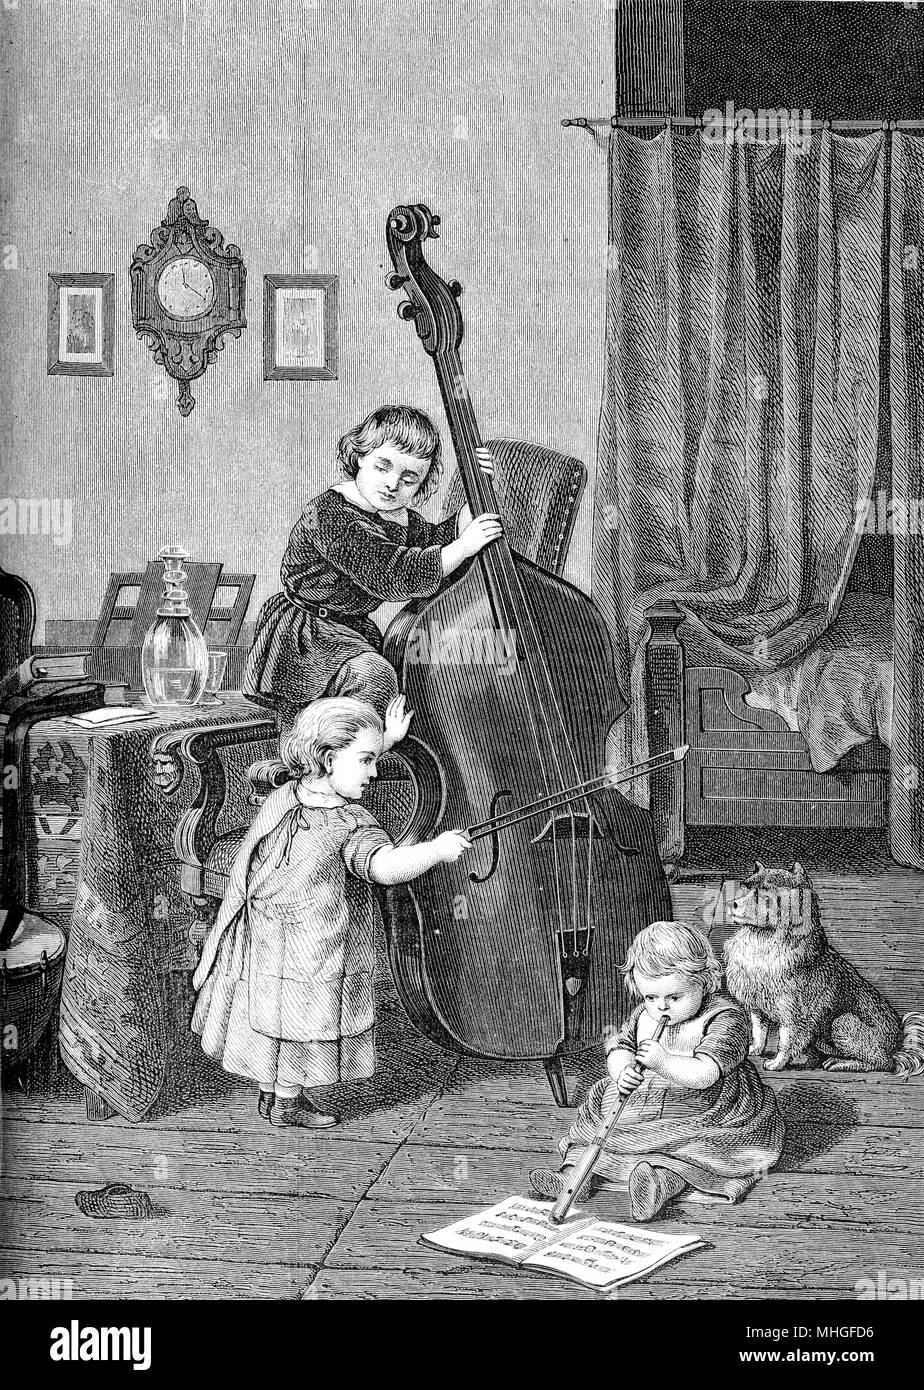 Family trio, young musicians with cello and flute: the toddlers make music at home - Stock Image